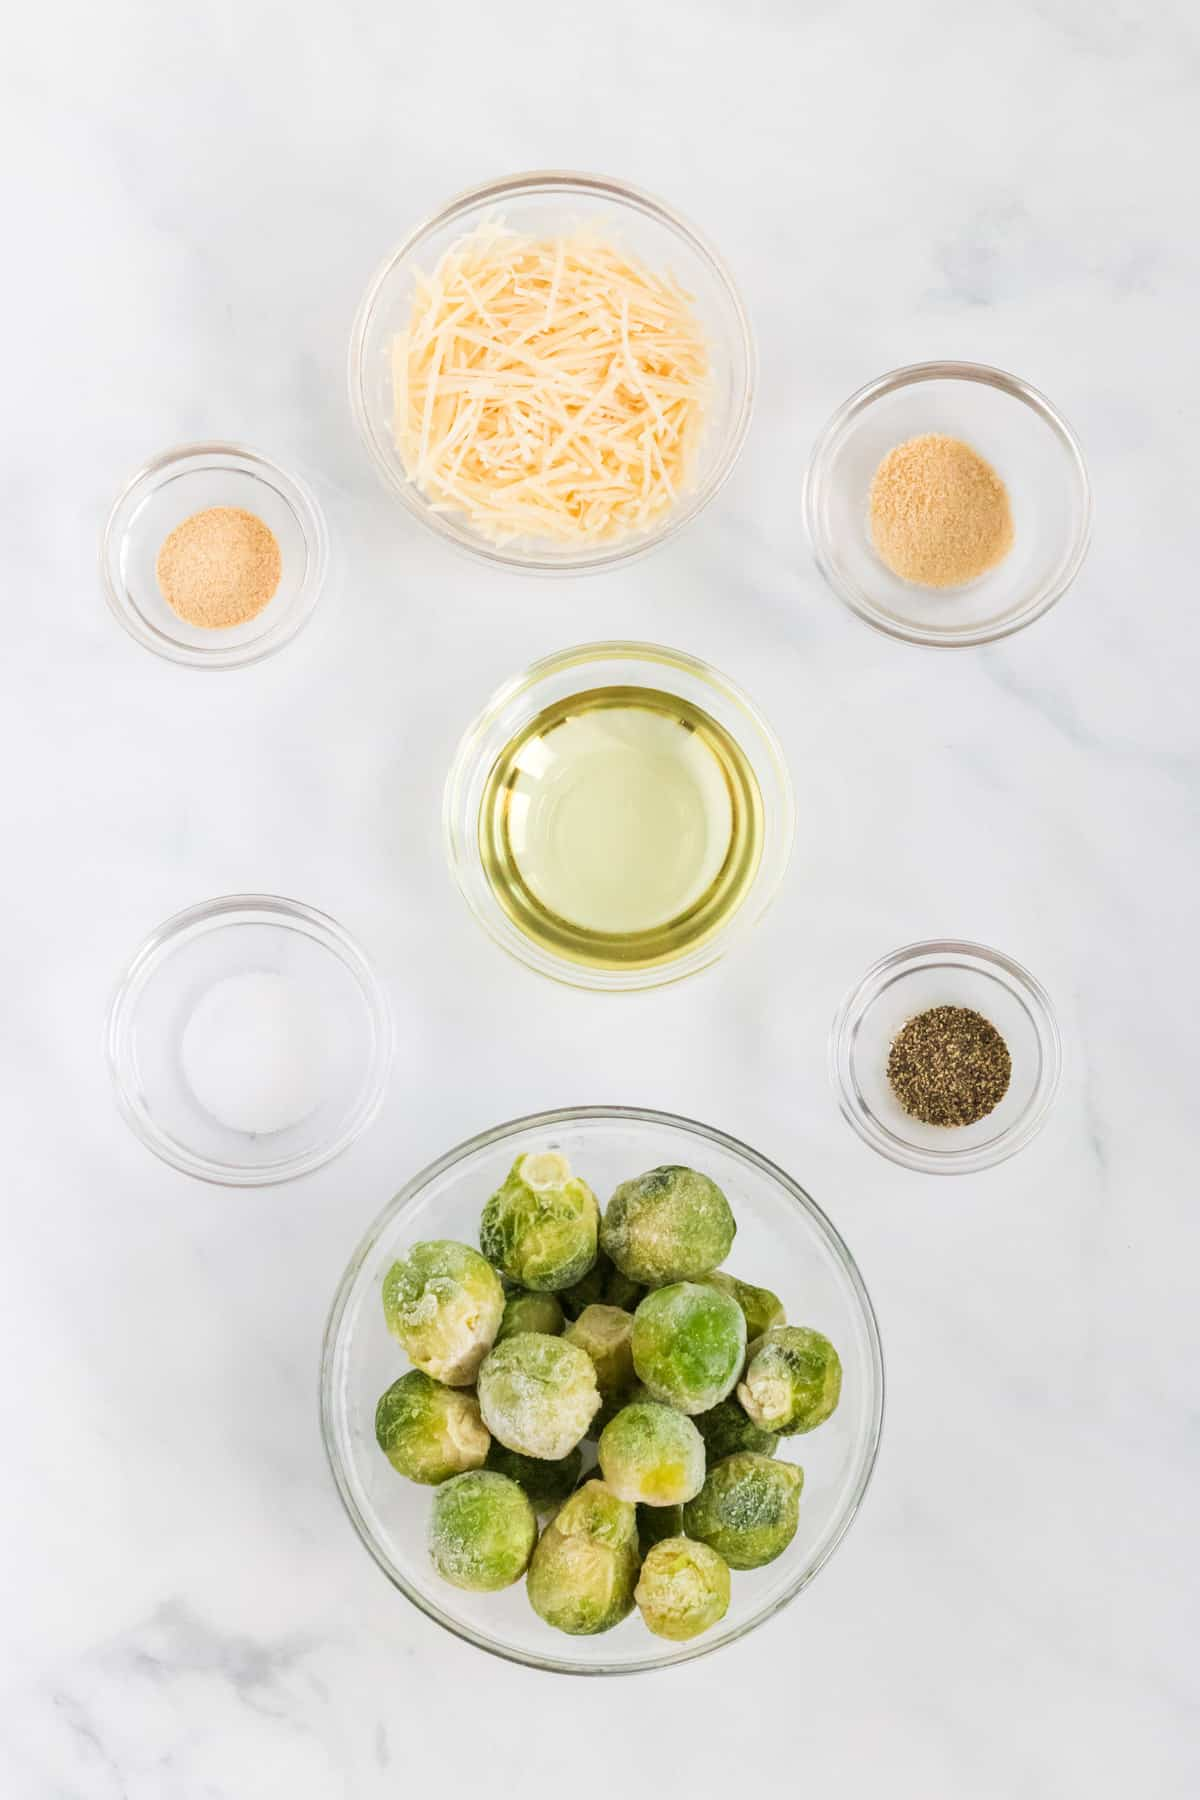 ingredients to make roasted frozen brussels sprouts